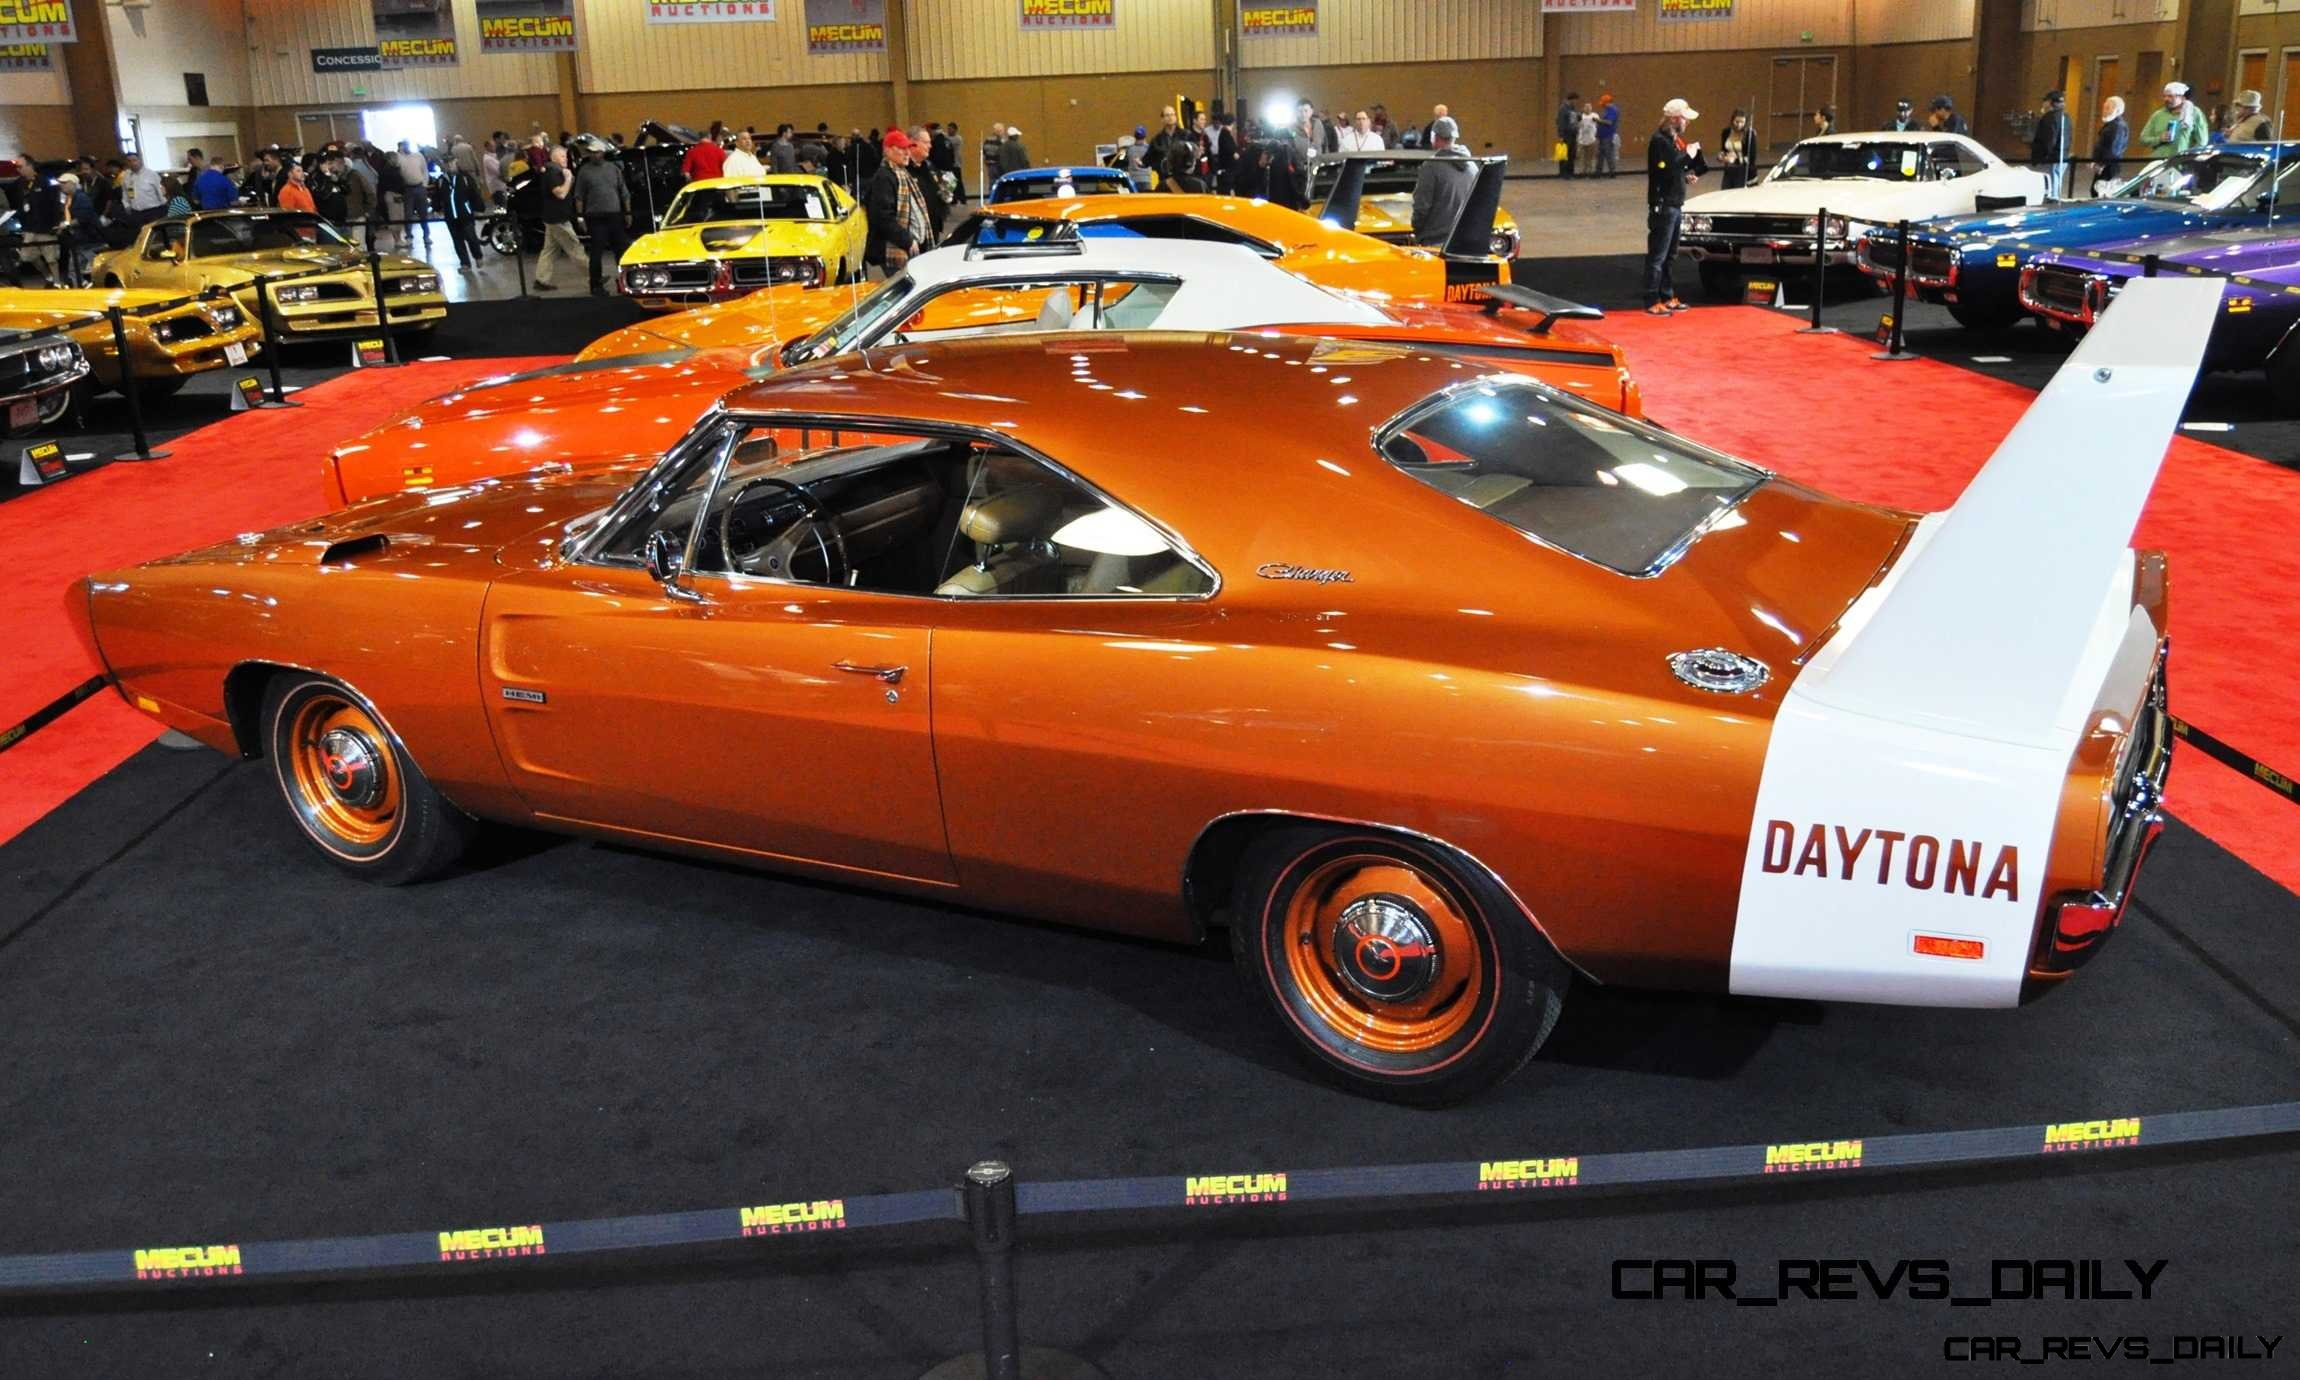 1969 Dodge Charger Hemi DAYTONA 18